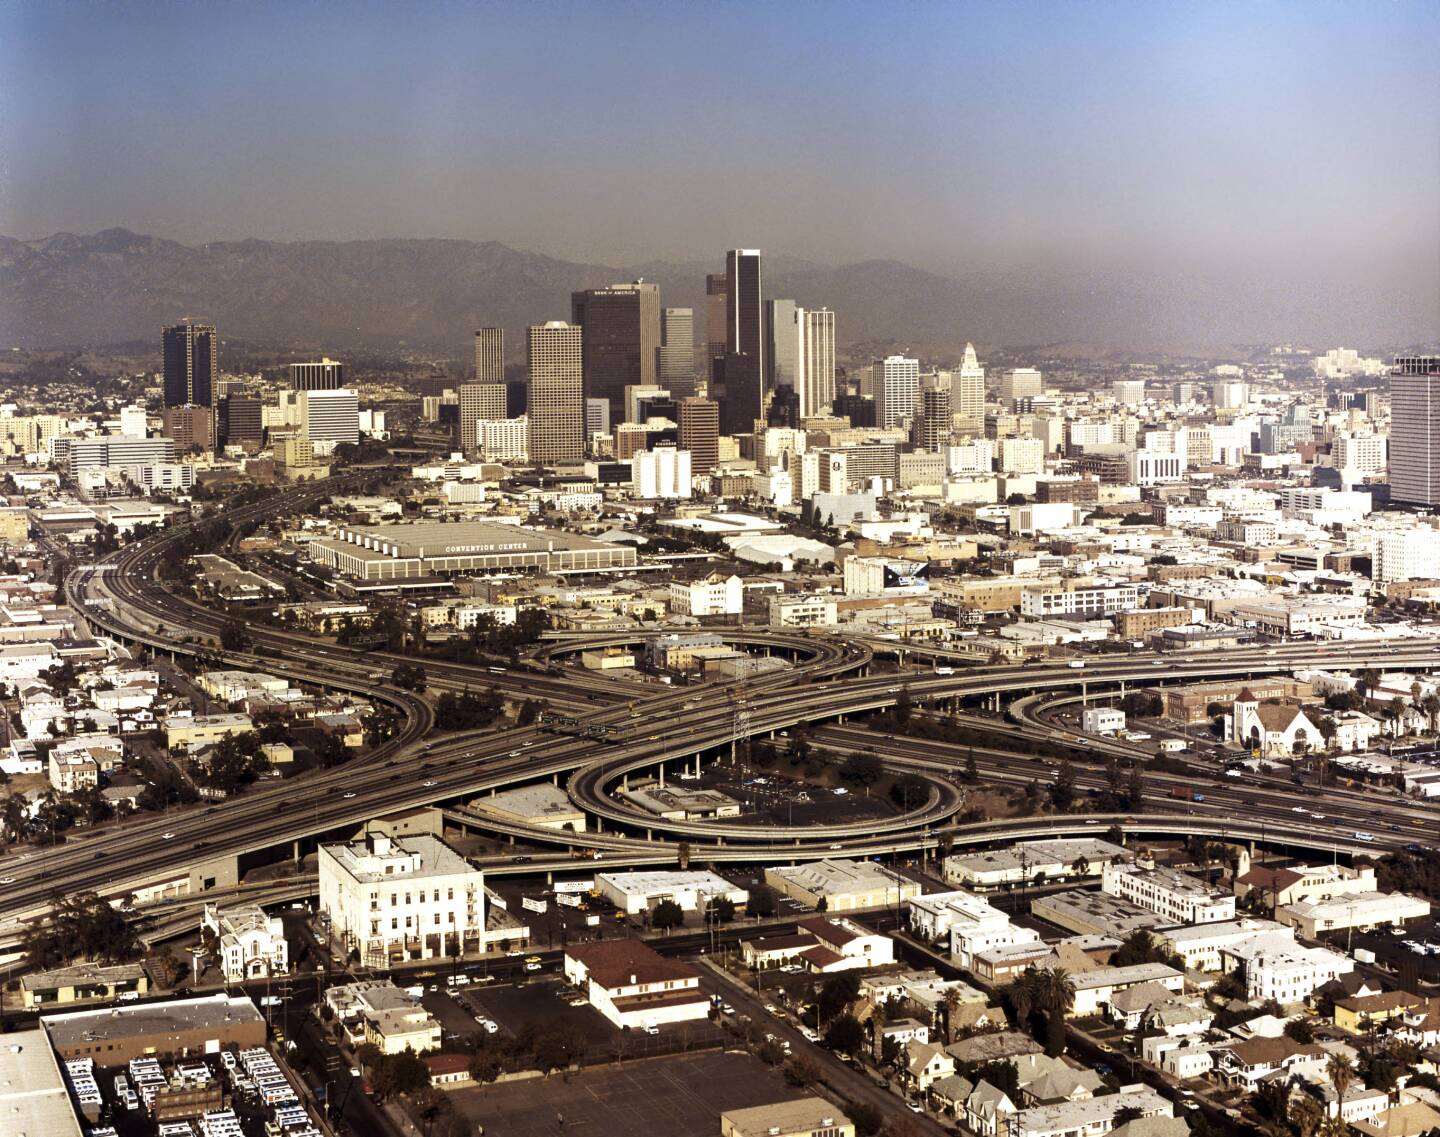 Downtown Los Angeles in 1985